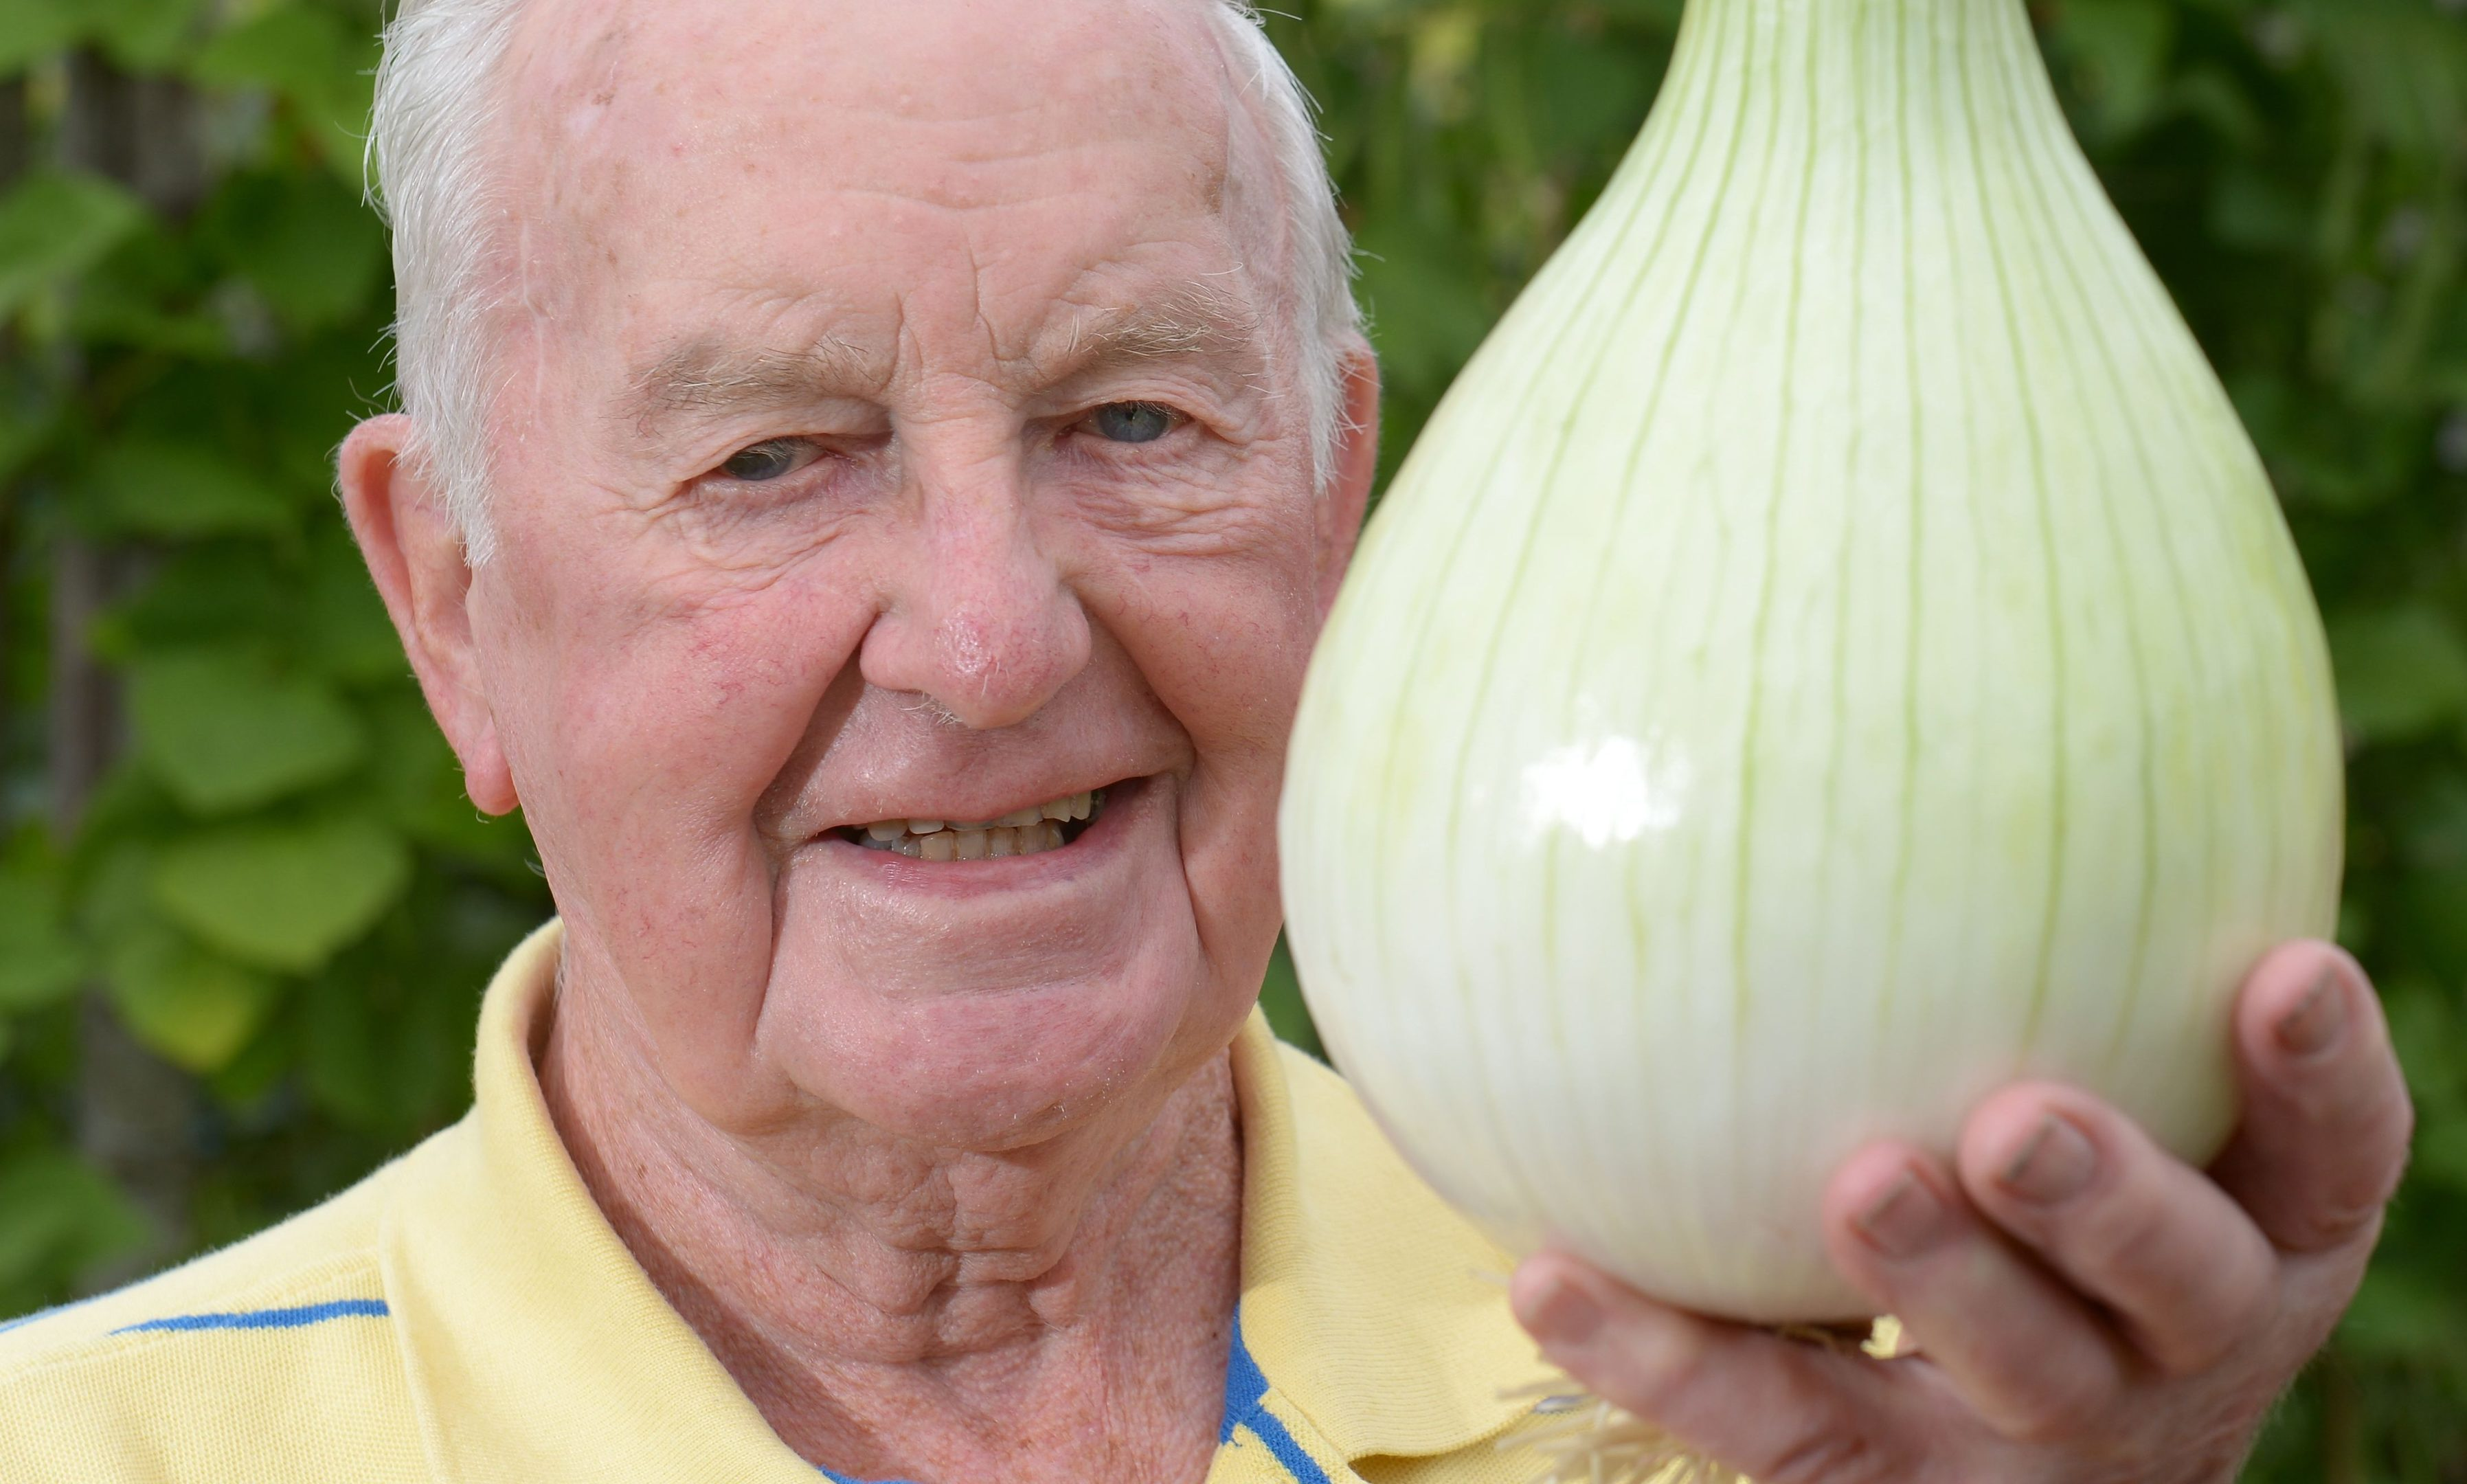 Jim Thomson grows the veg of champions.